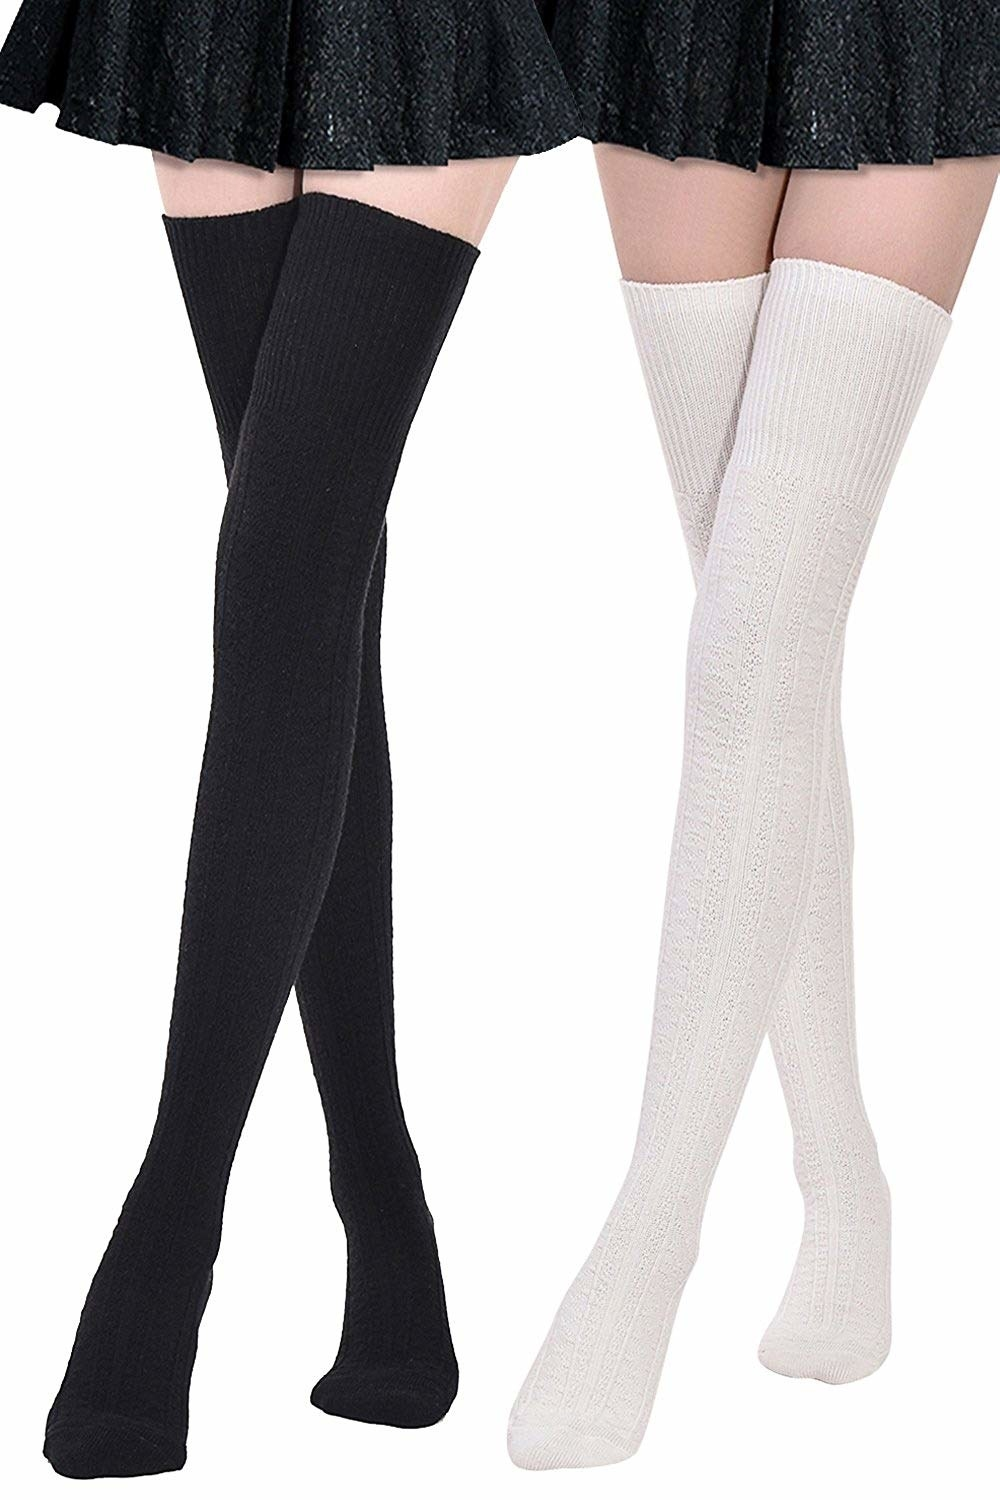 The socks in black and white